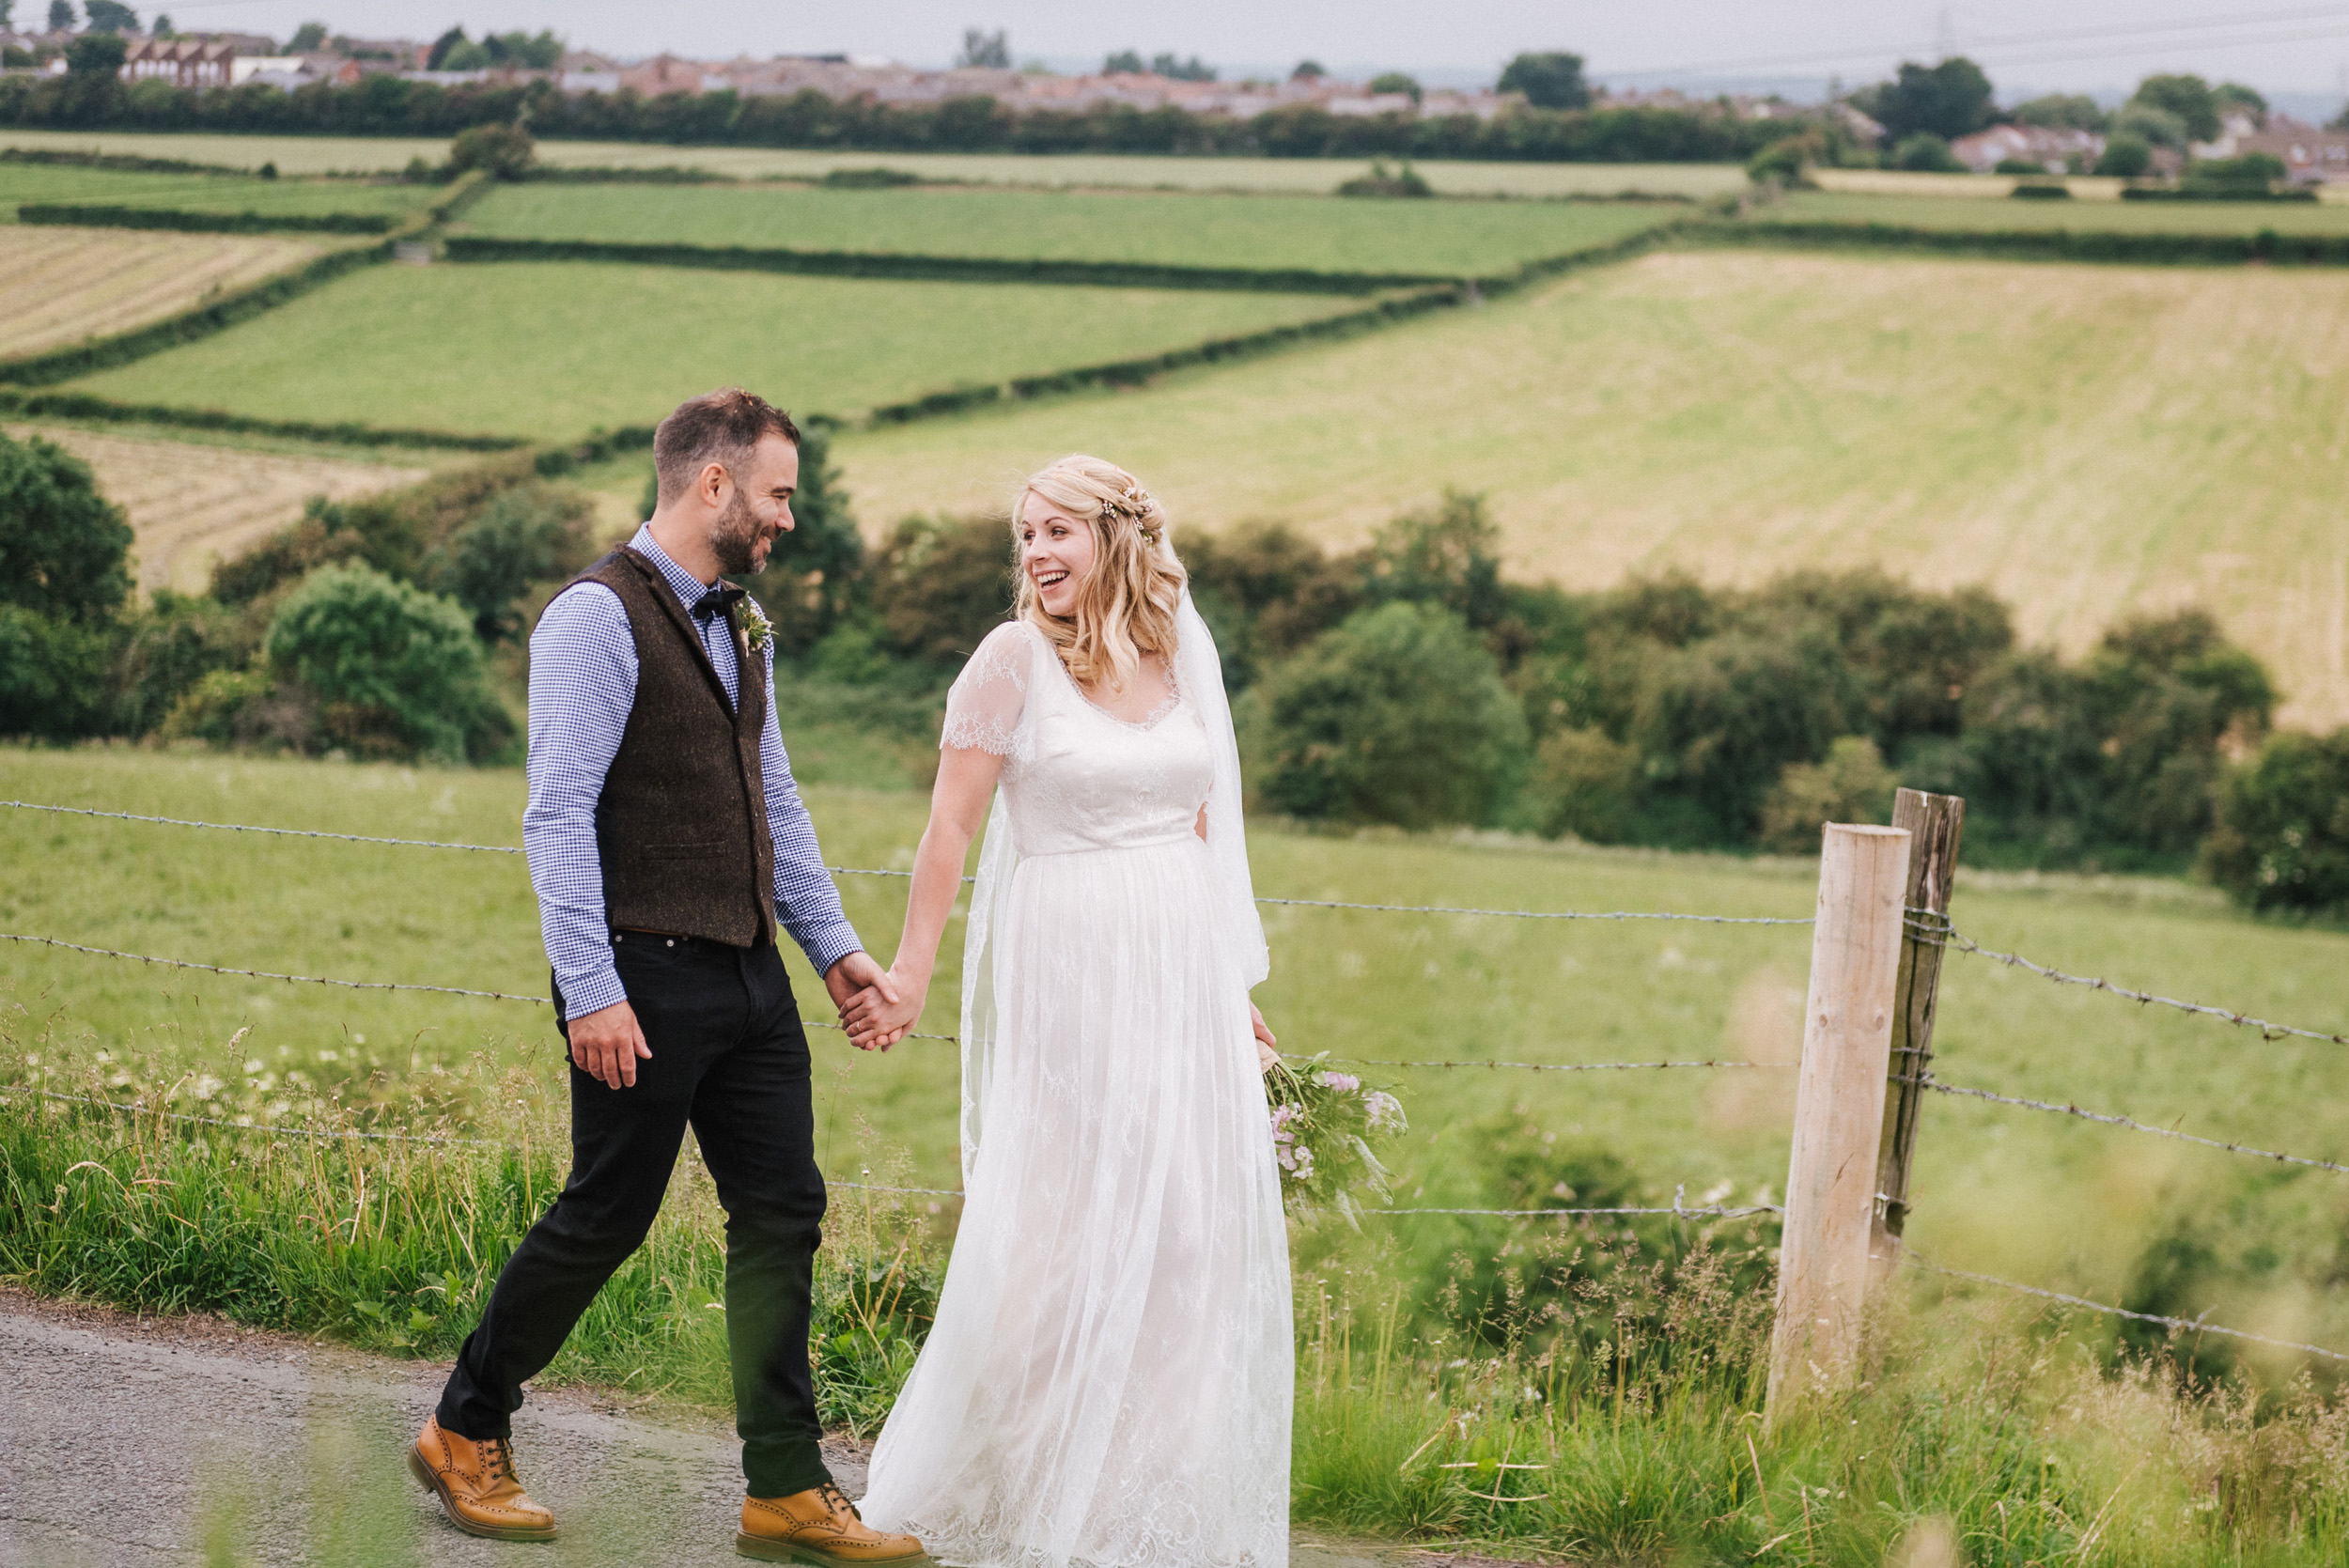 Lace-Wedding-Gown-Rustic-Barn-Wedding-Yorkshire-Kate-Beaumont-16.jpg